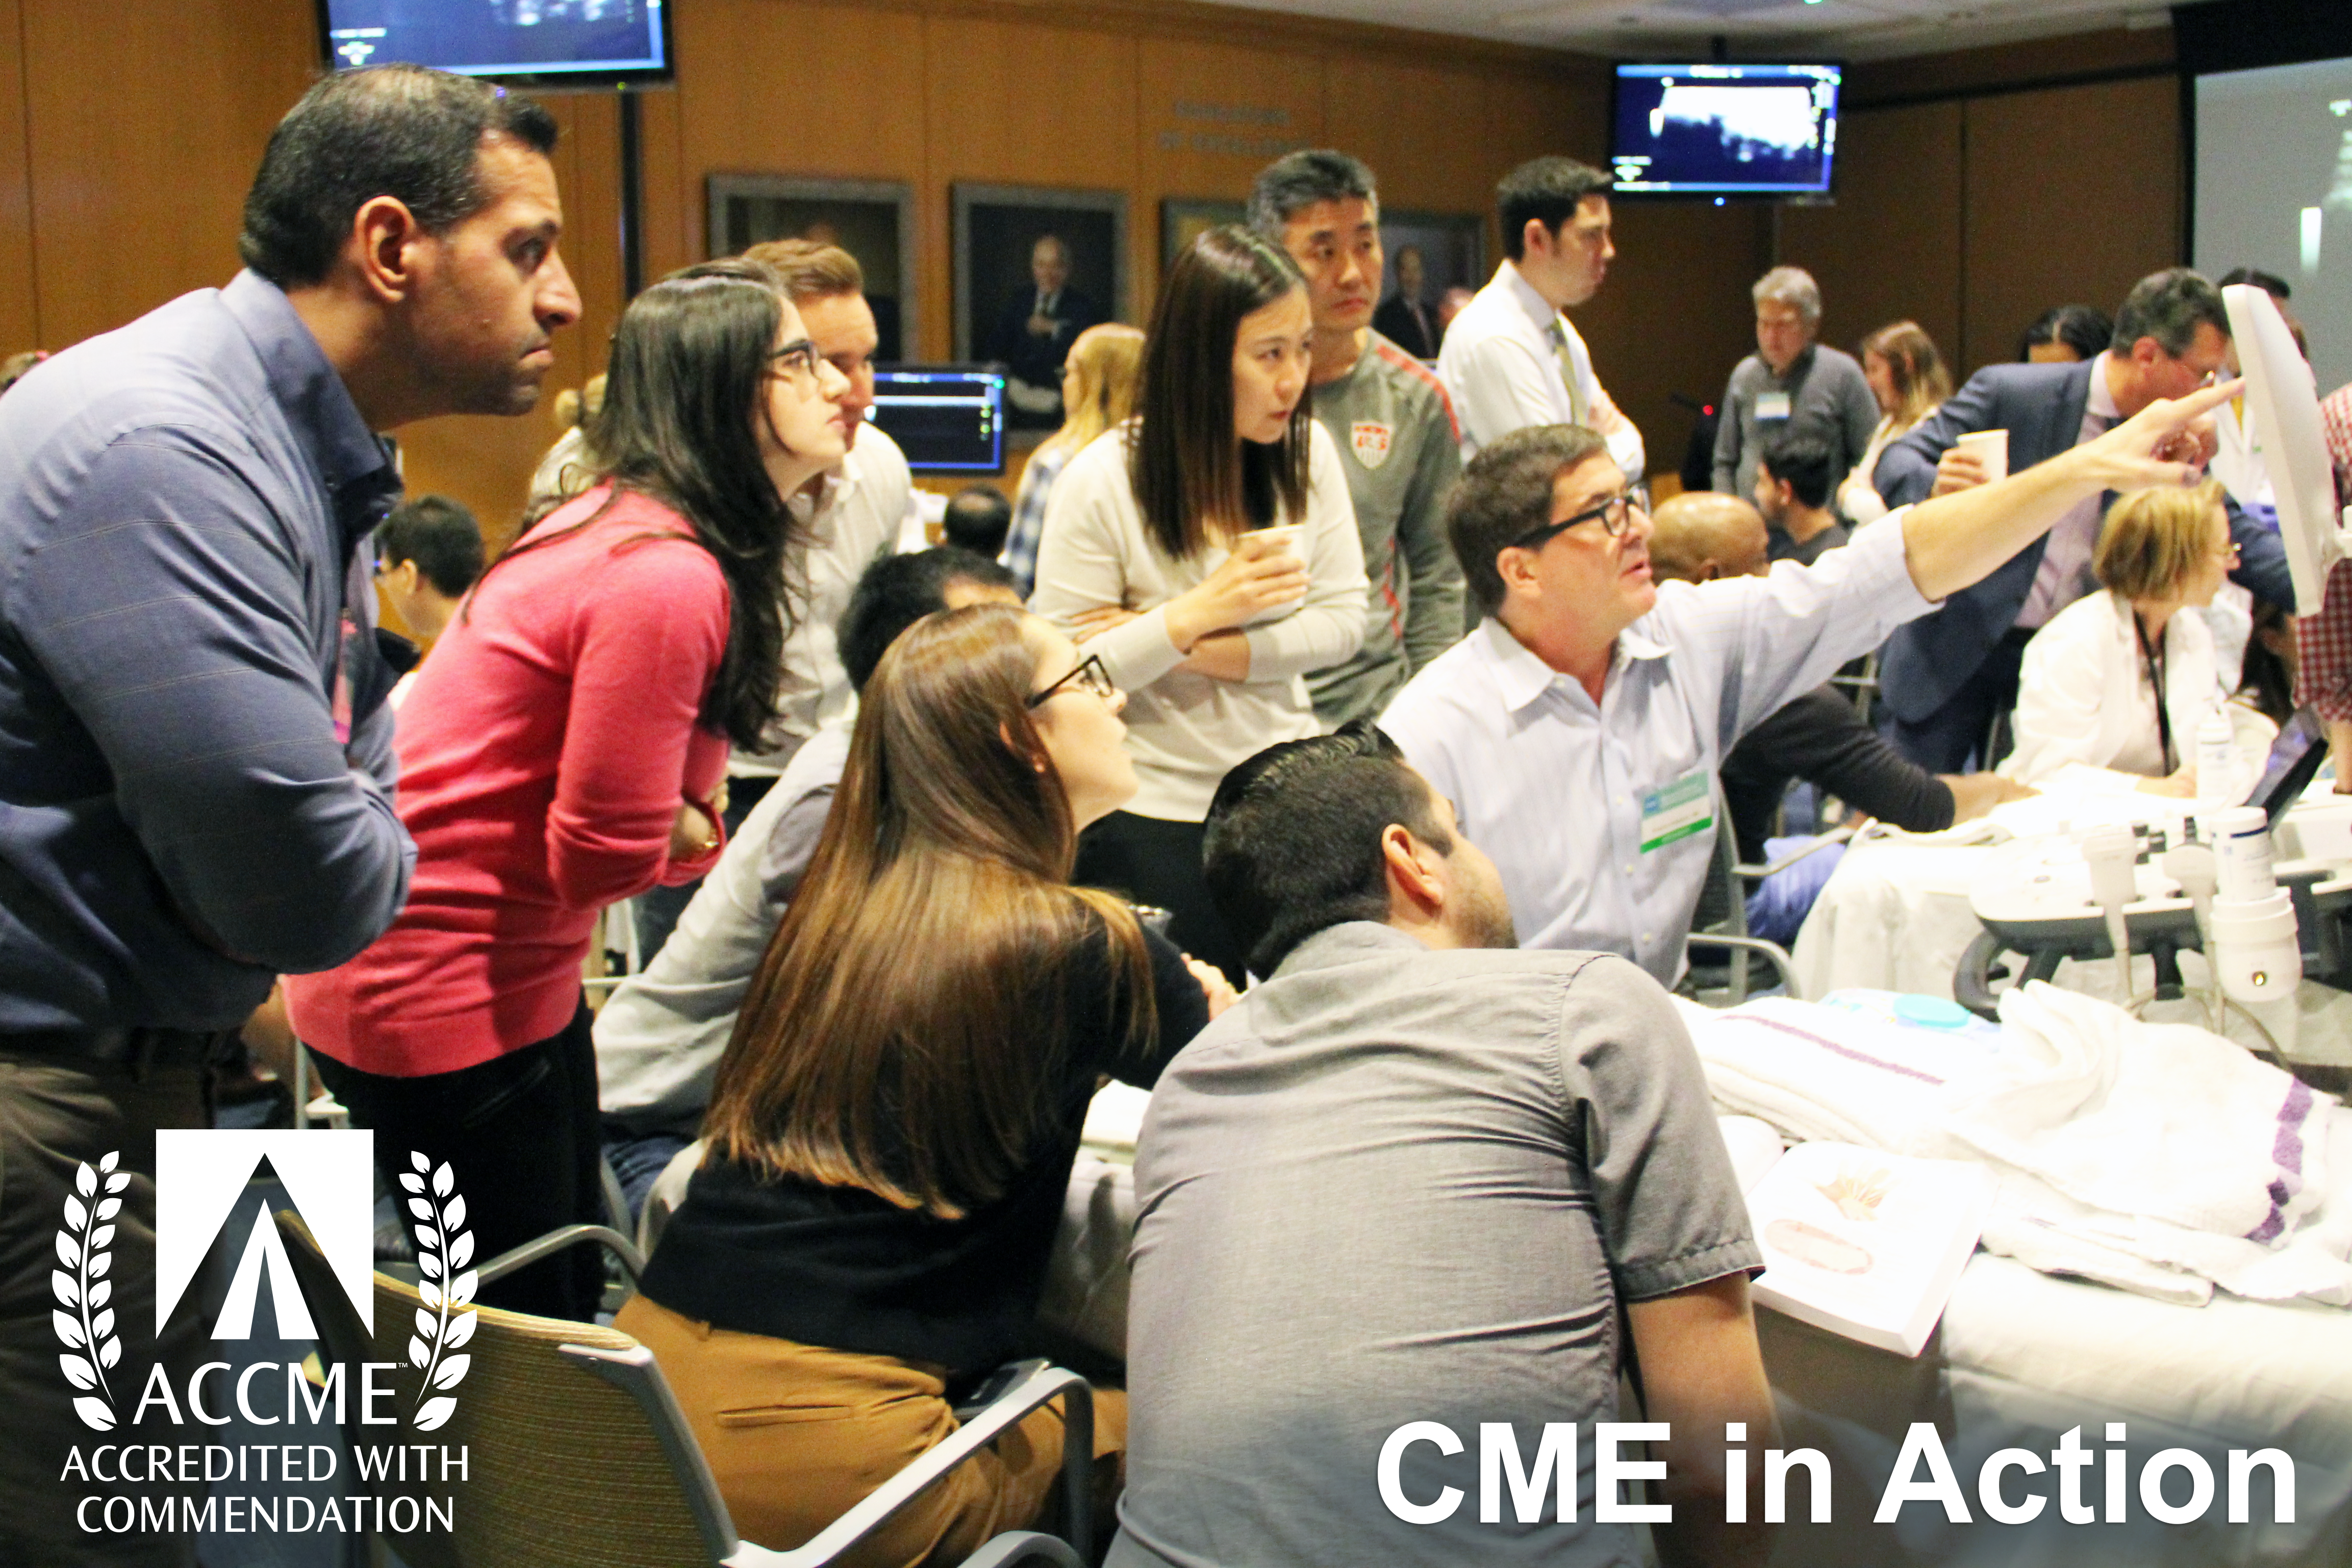 cme in action